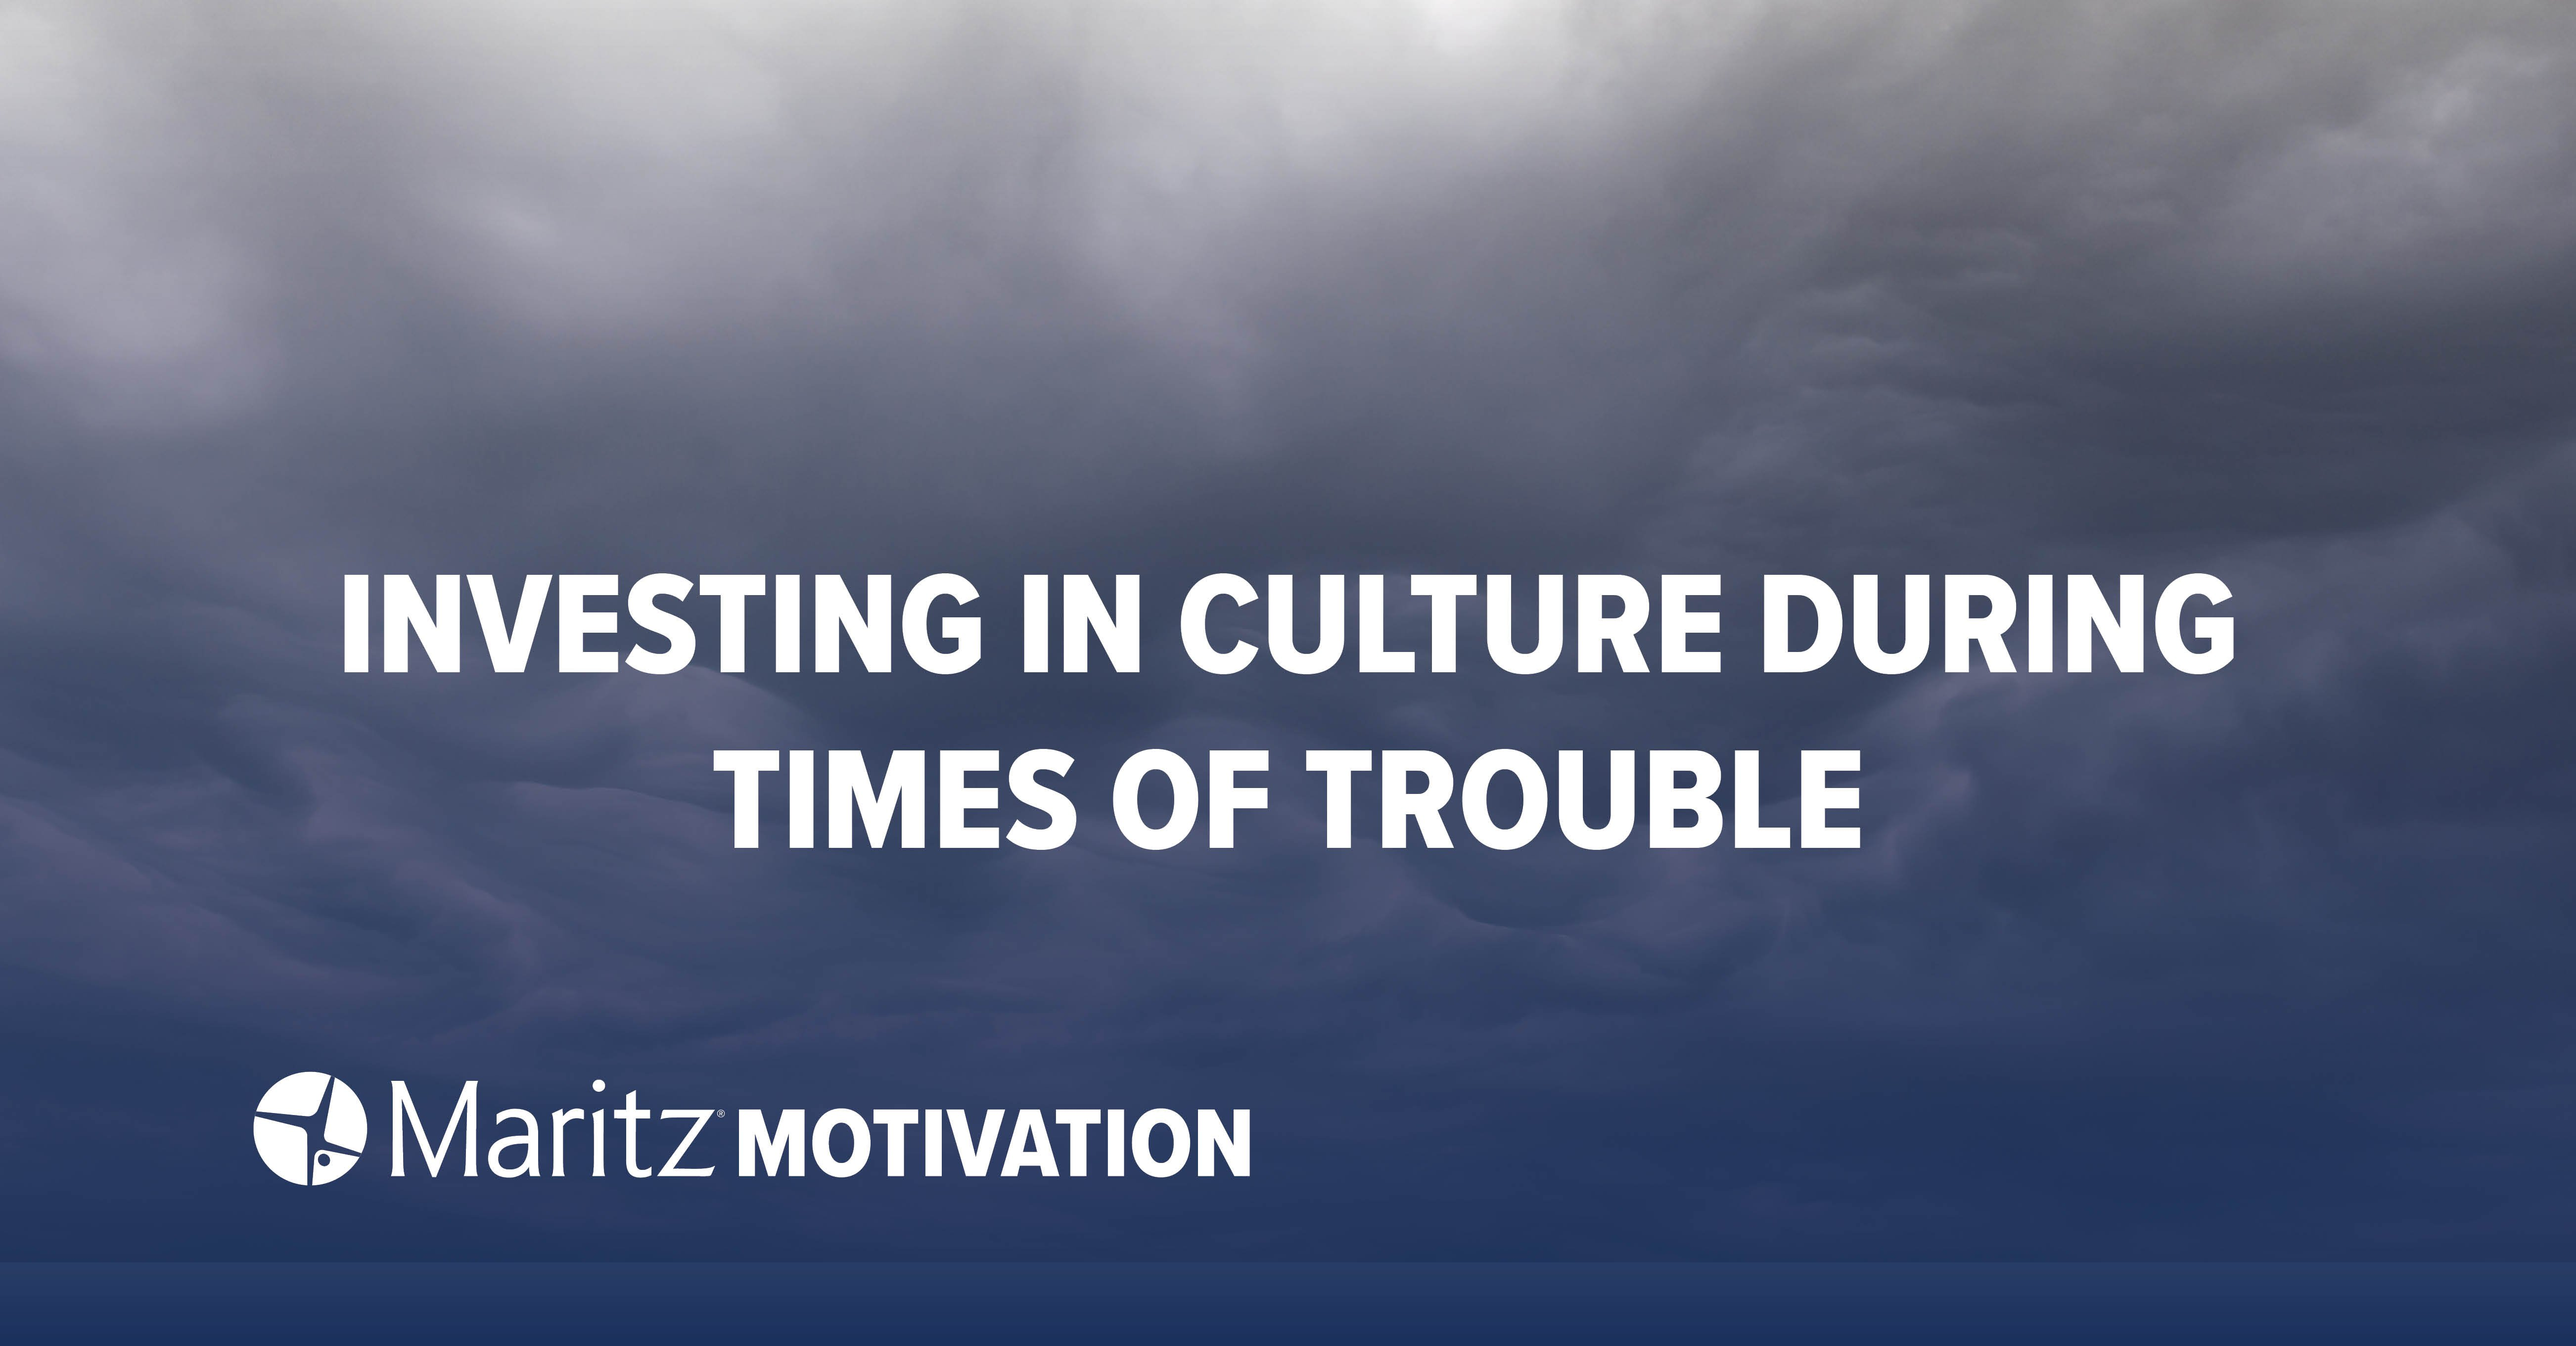 Investing in Culture During Times of Trouble